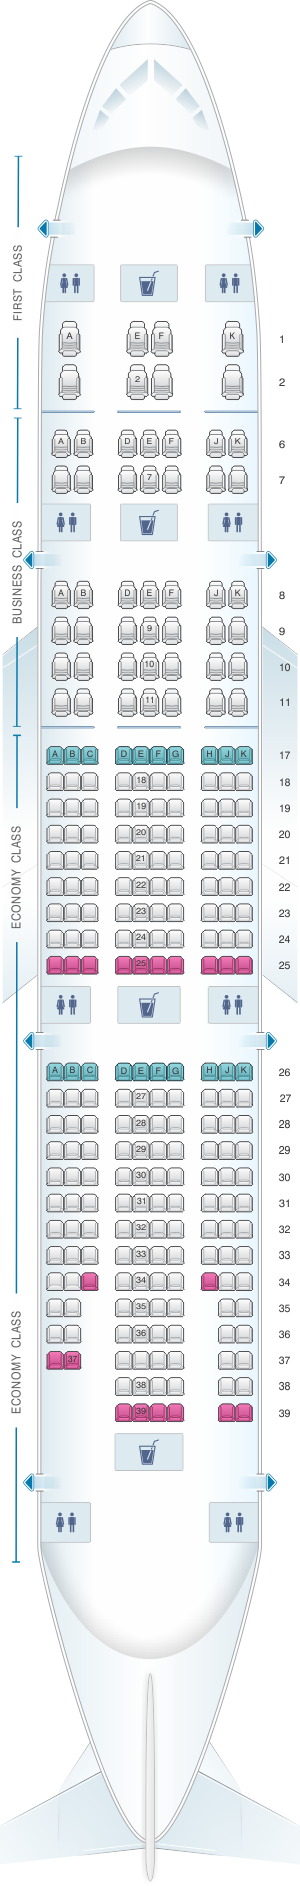 Seat map for Emirates Boeing B777 200LR